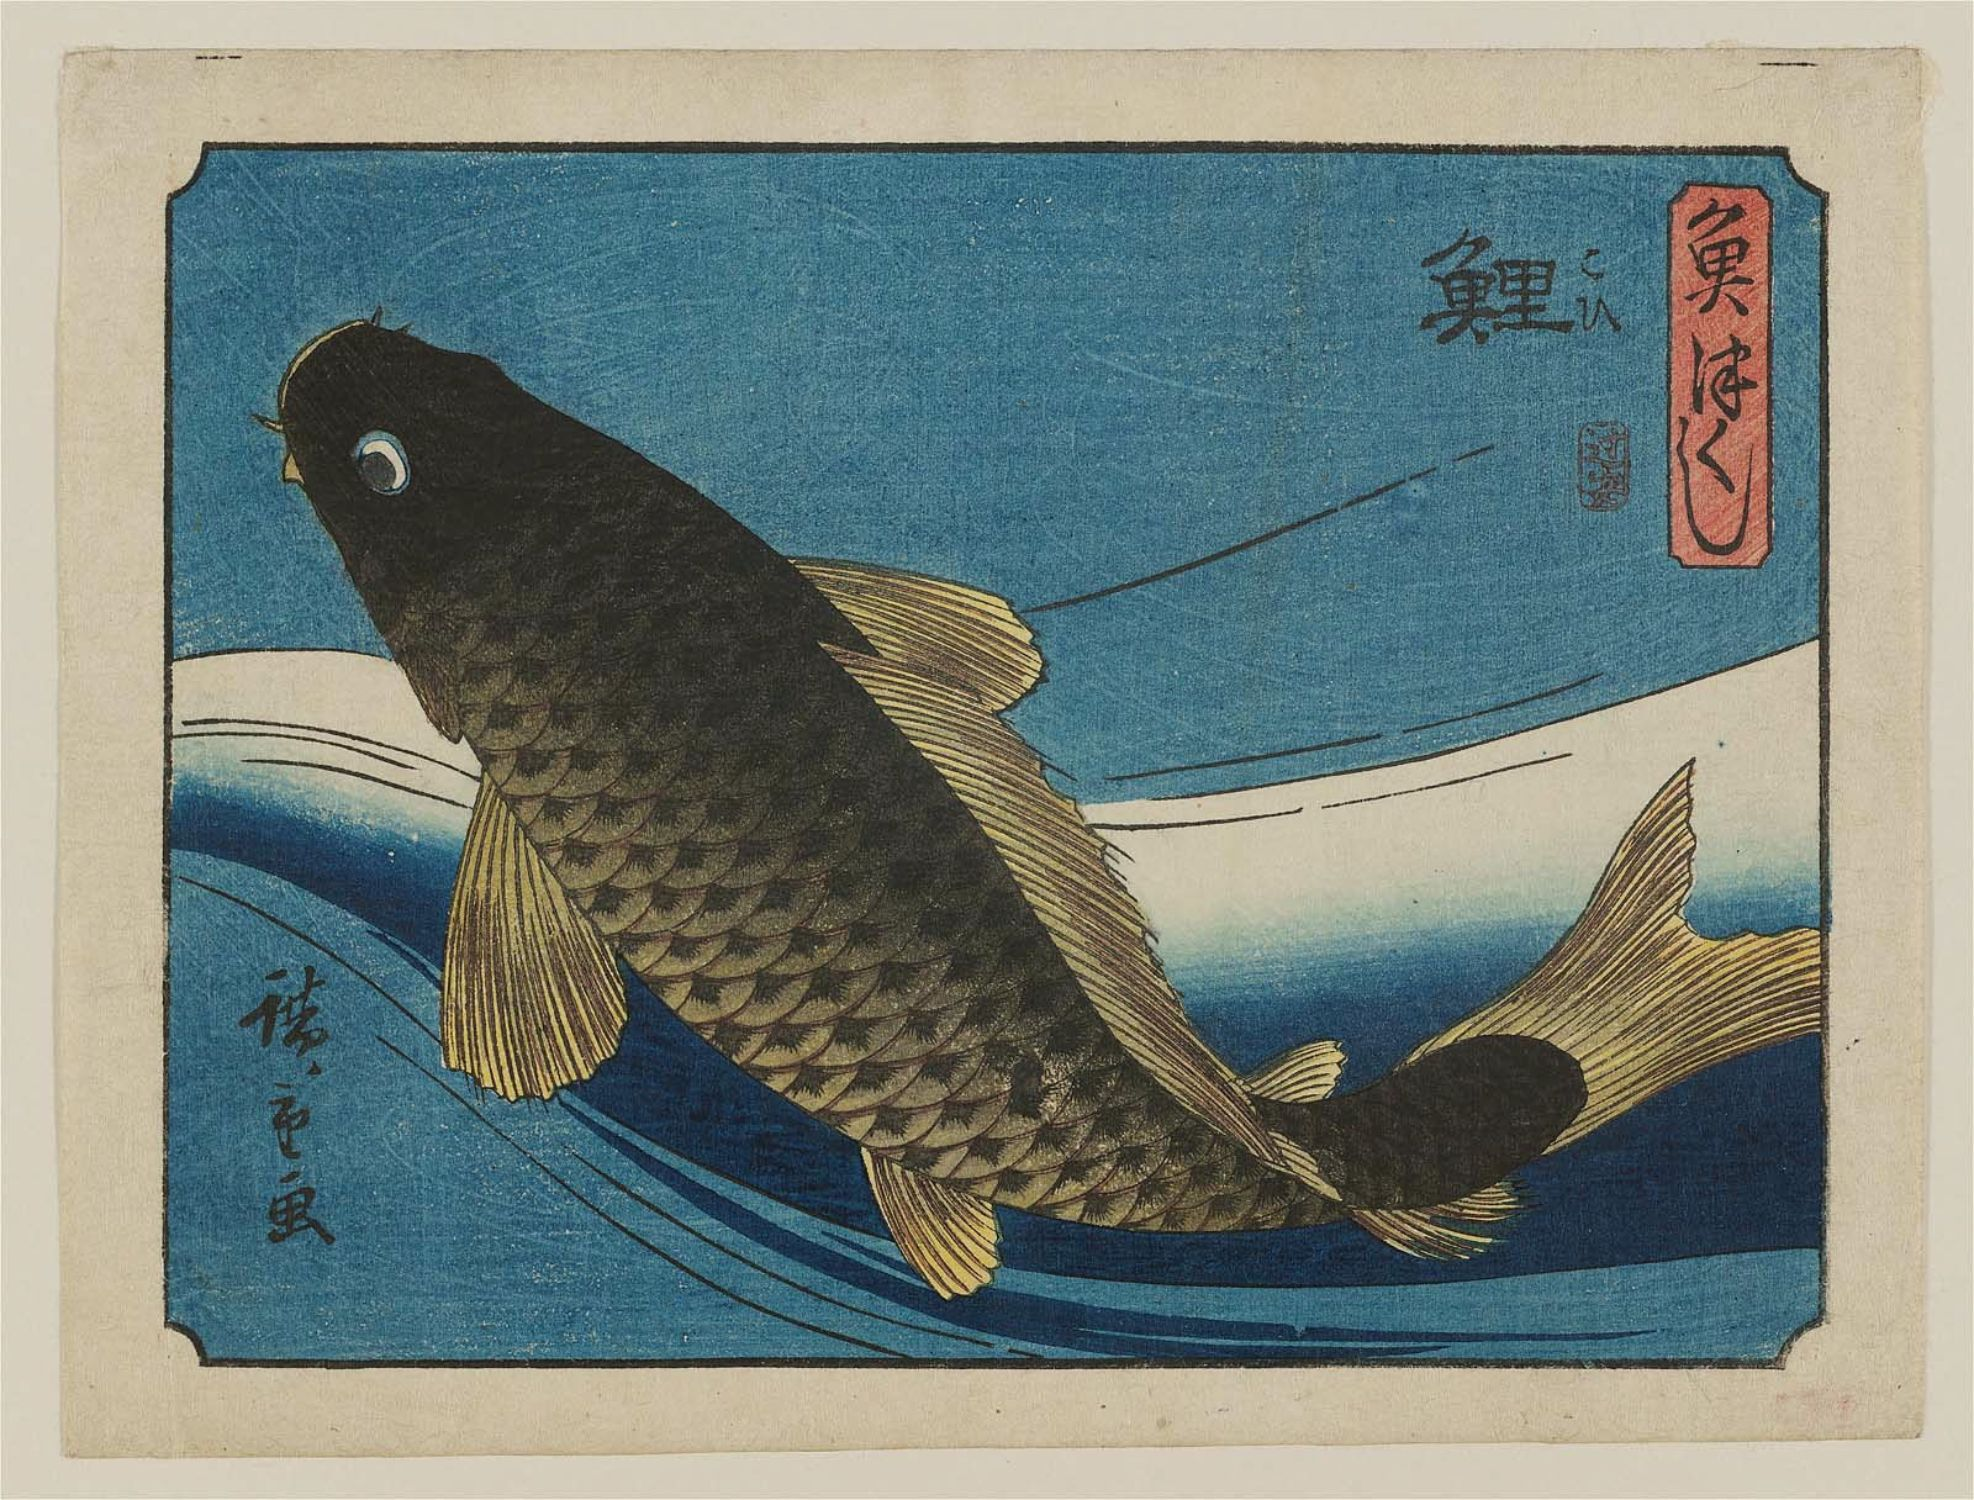 1000 images about hiroshige on pinterest the o 39 jays for Japanese koi art prints